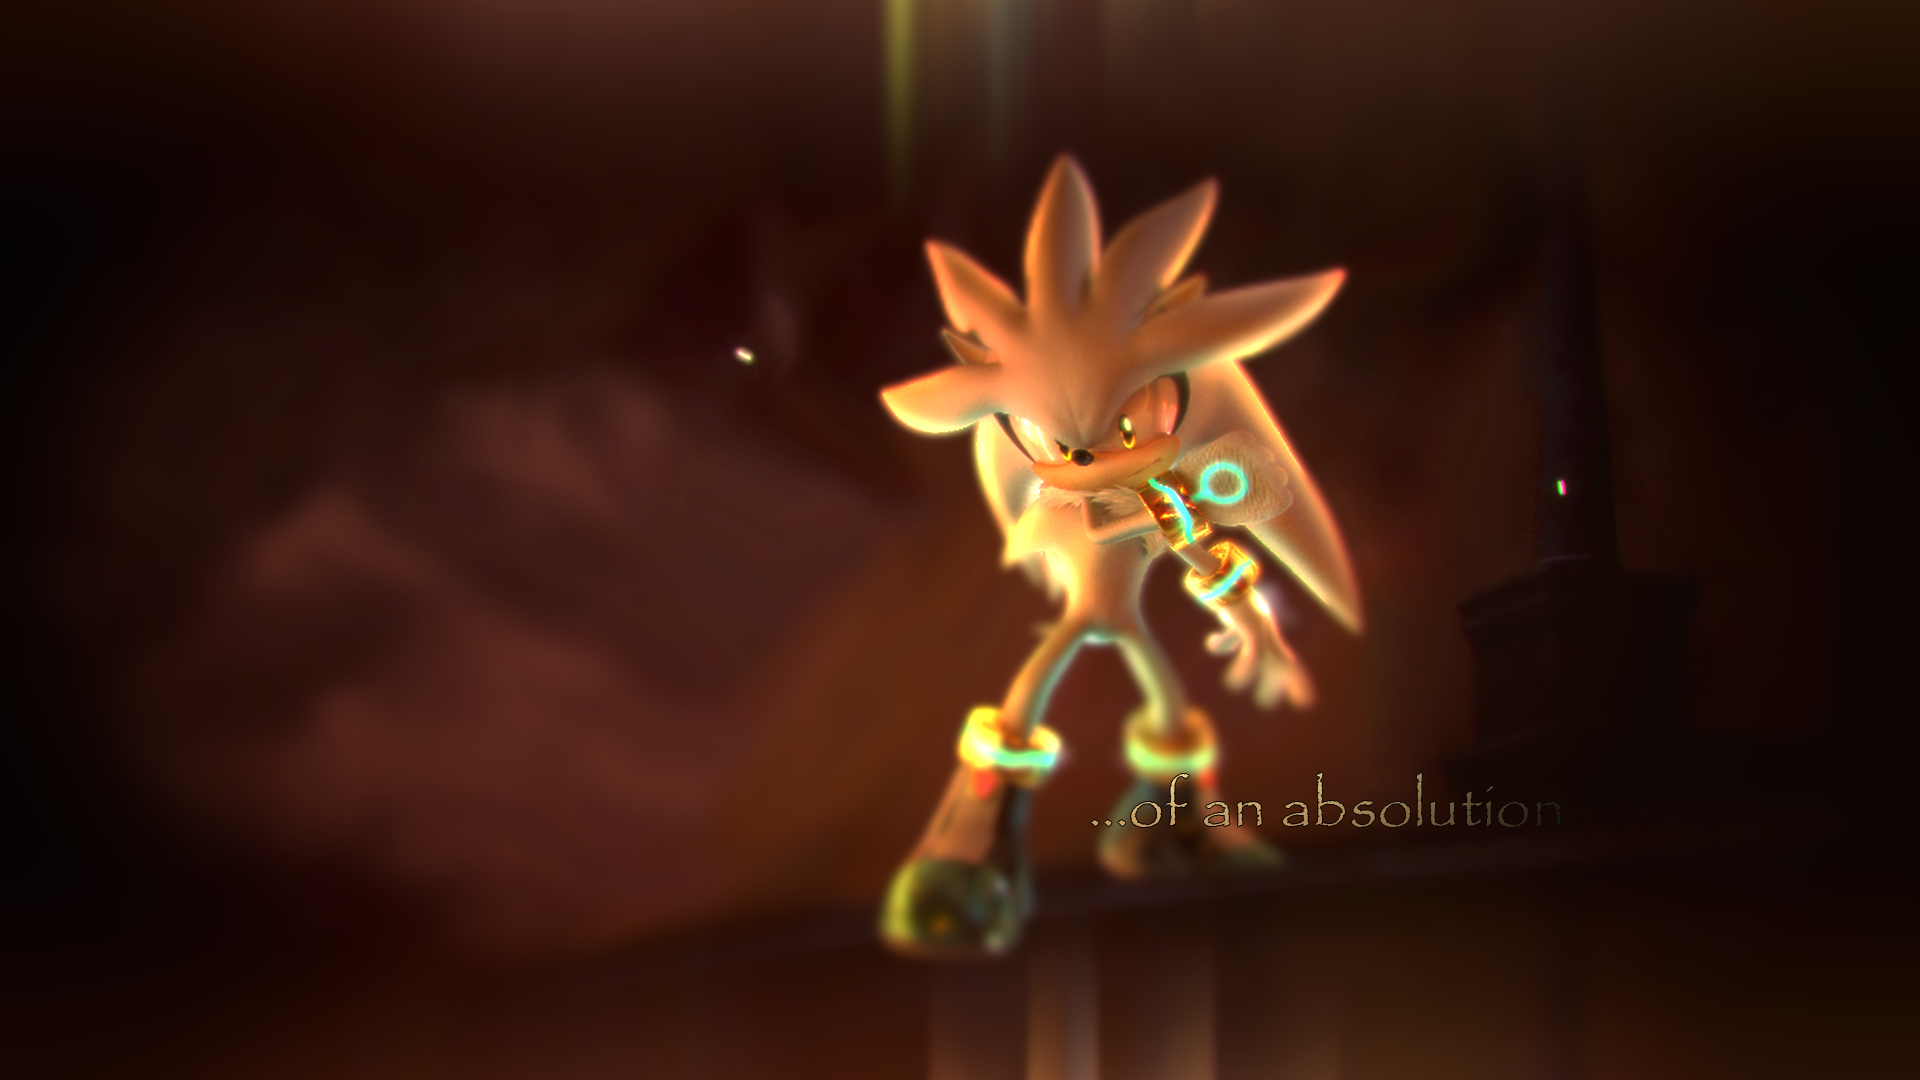 Silver The Hedgehog Of An Absolution By RealSonicSpeed